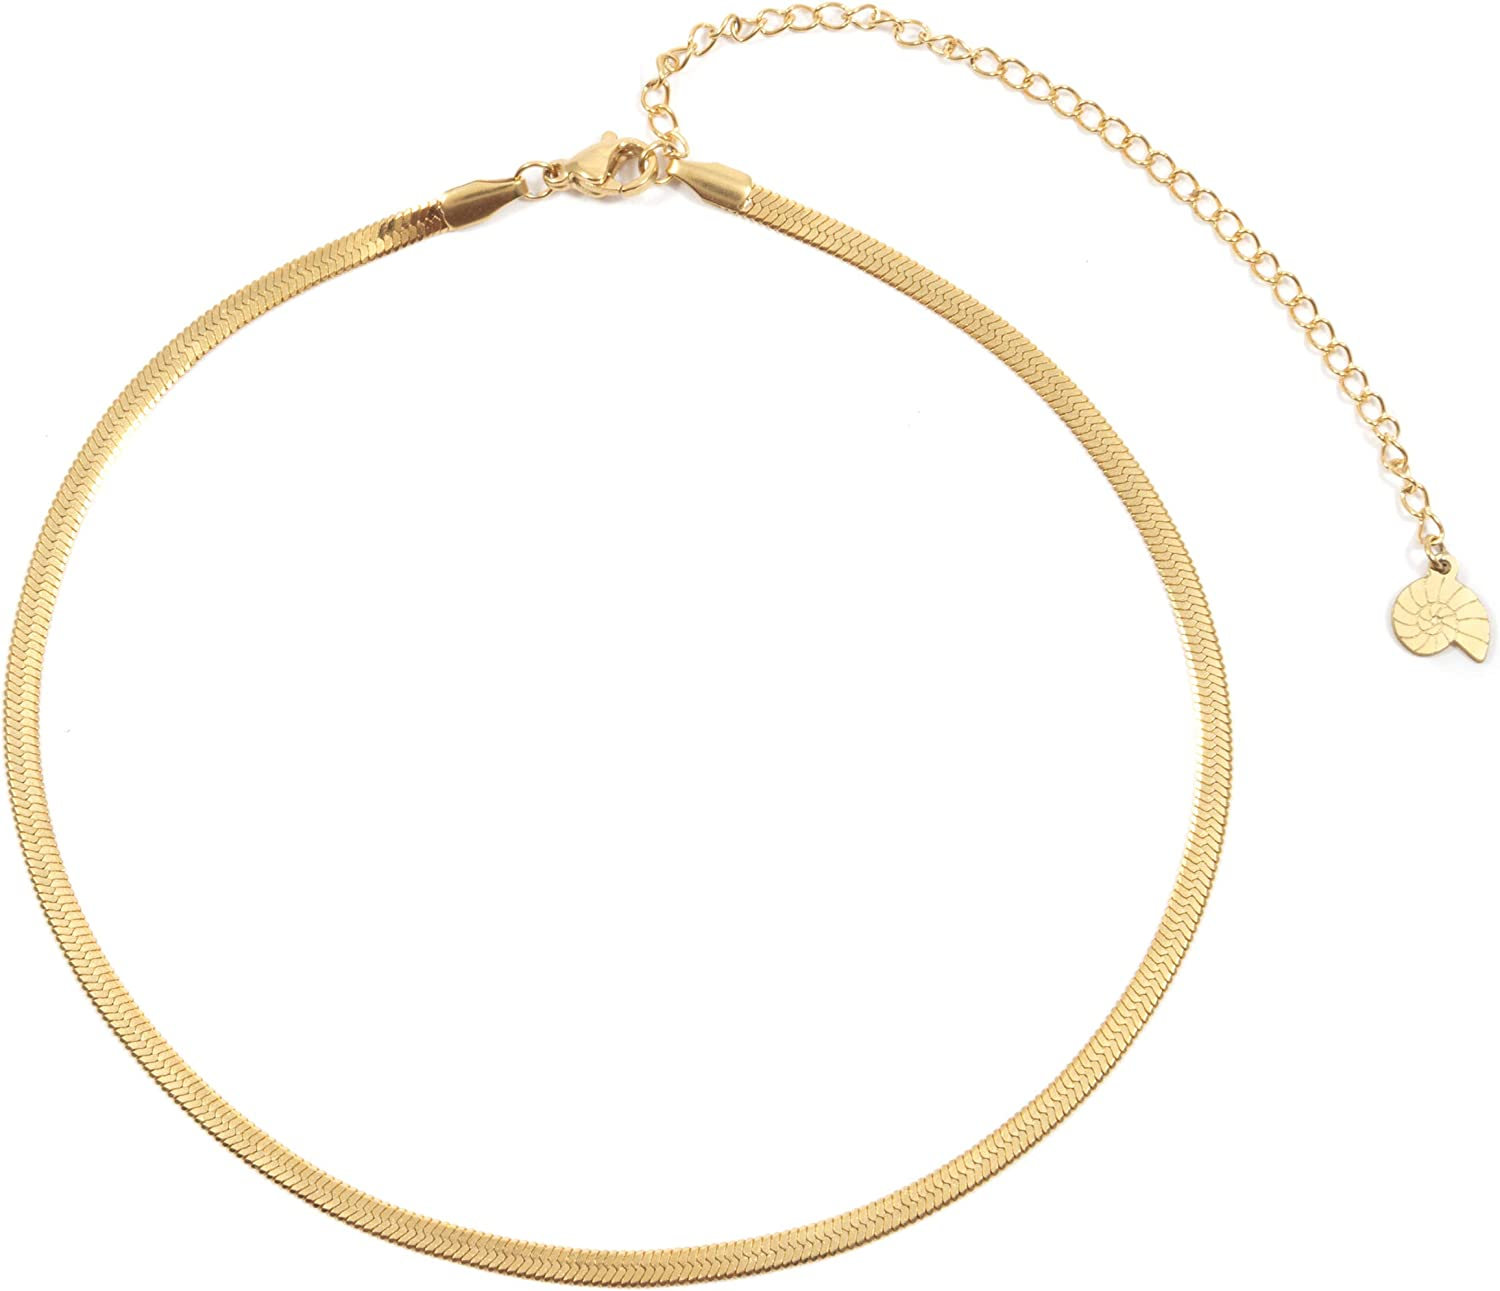 Happiness Boutique Women Herringbone Choker Necklace in Gold Color Delicate Necklace Stainless Steel